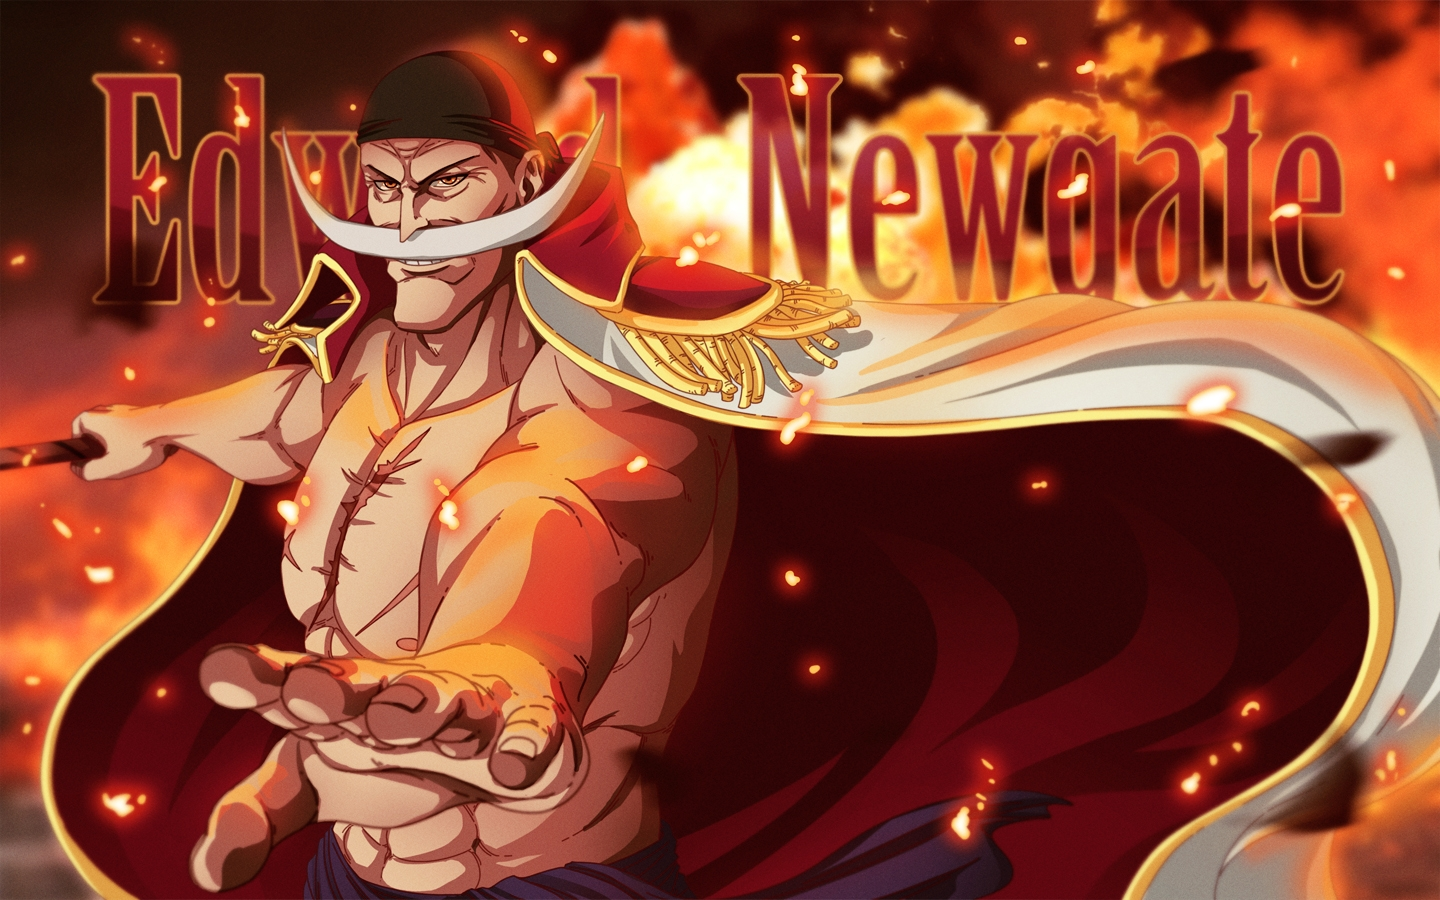 Edward Newgate Whitebeard wallpapers | Edward Newgate ...